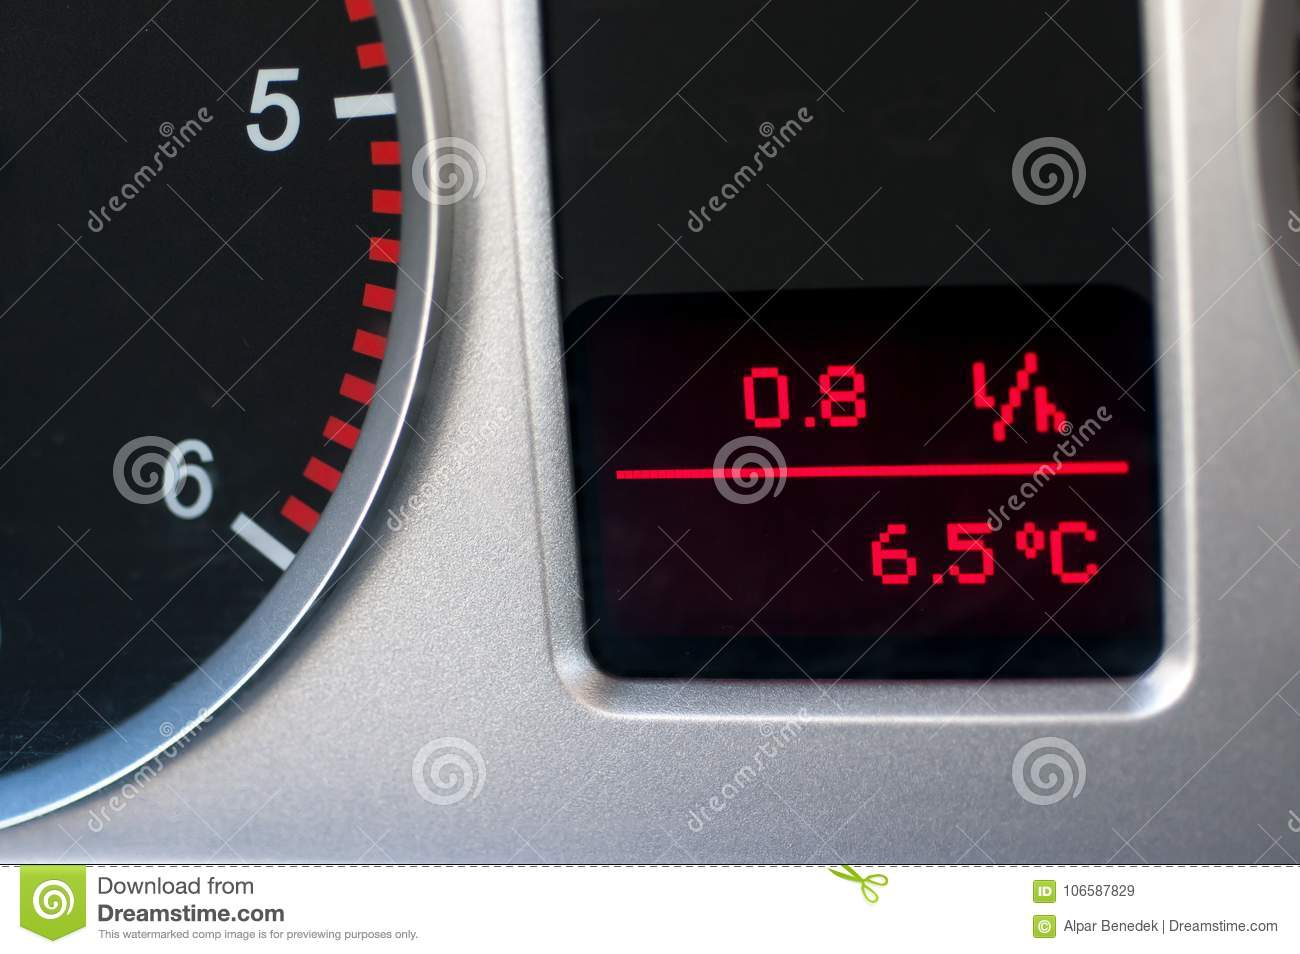 Average fuel consumption